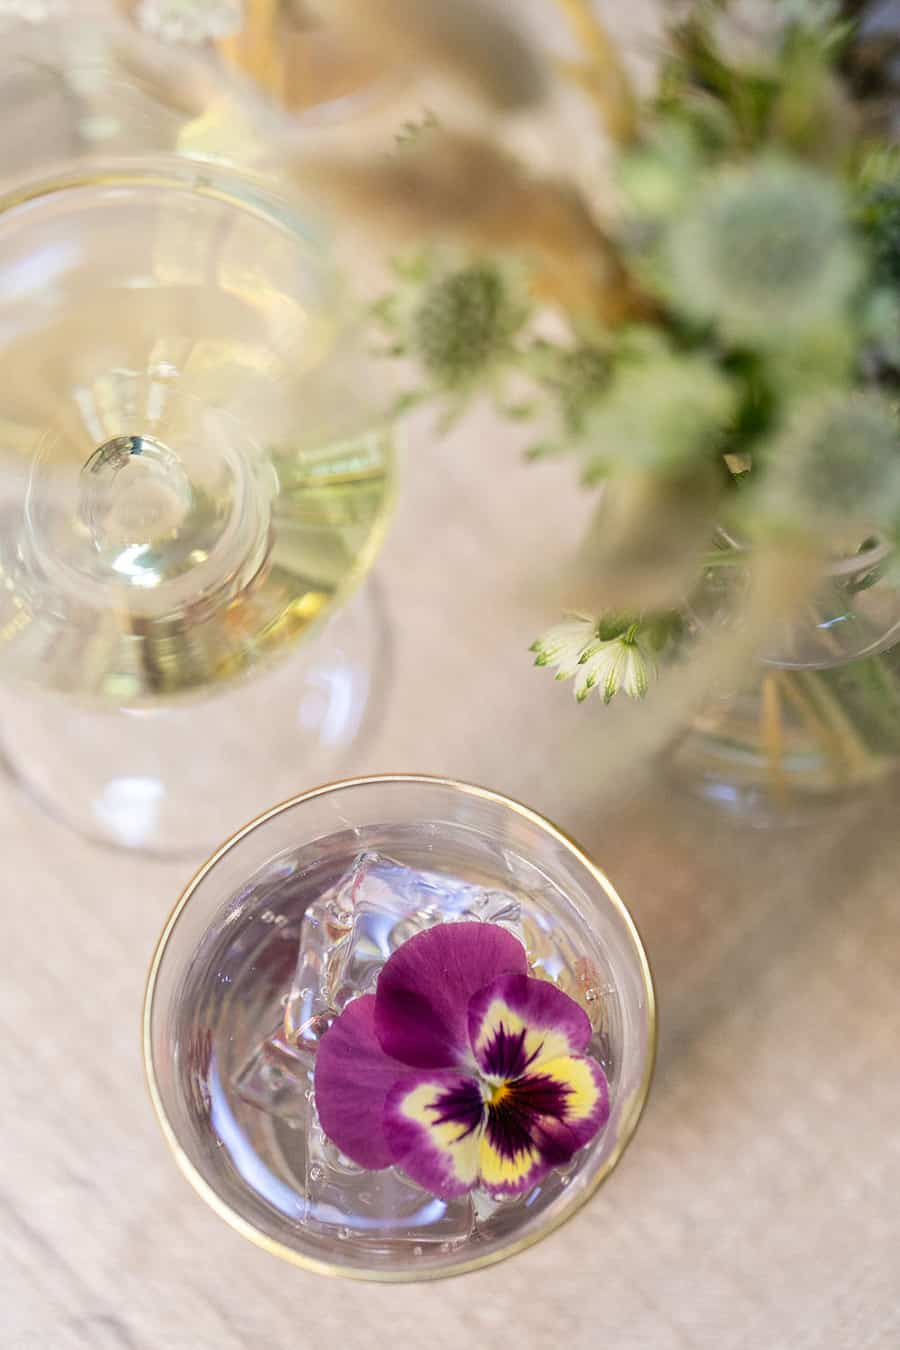 Water glass with a purple pansies